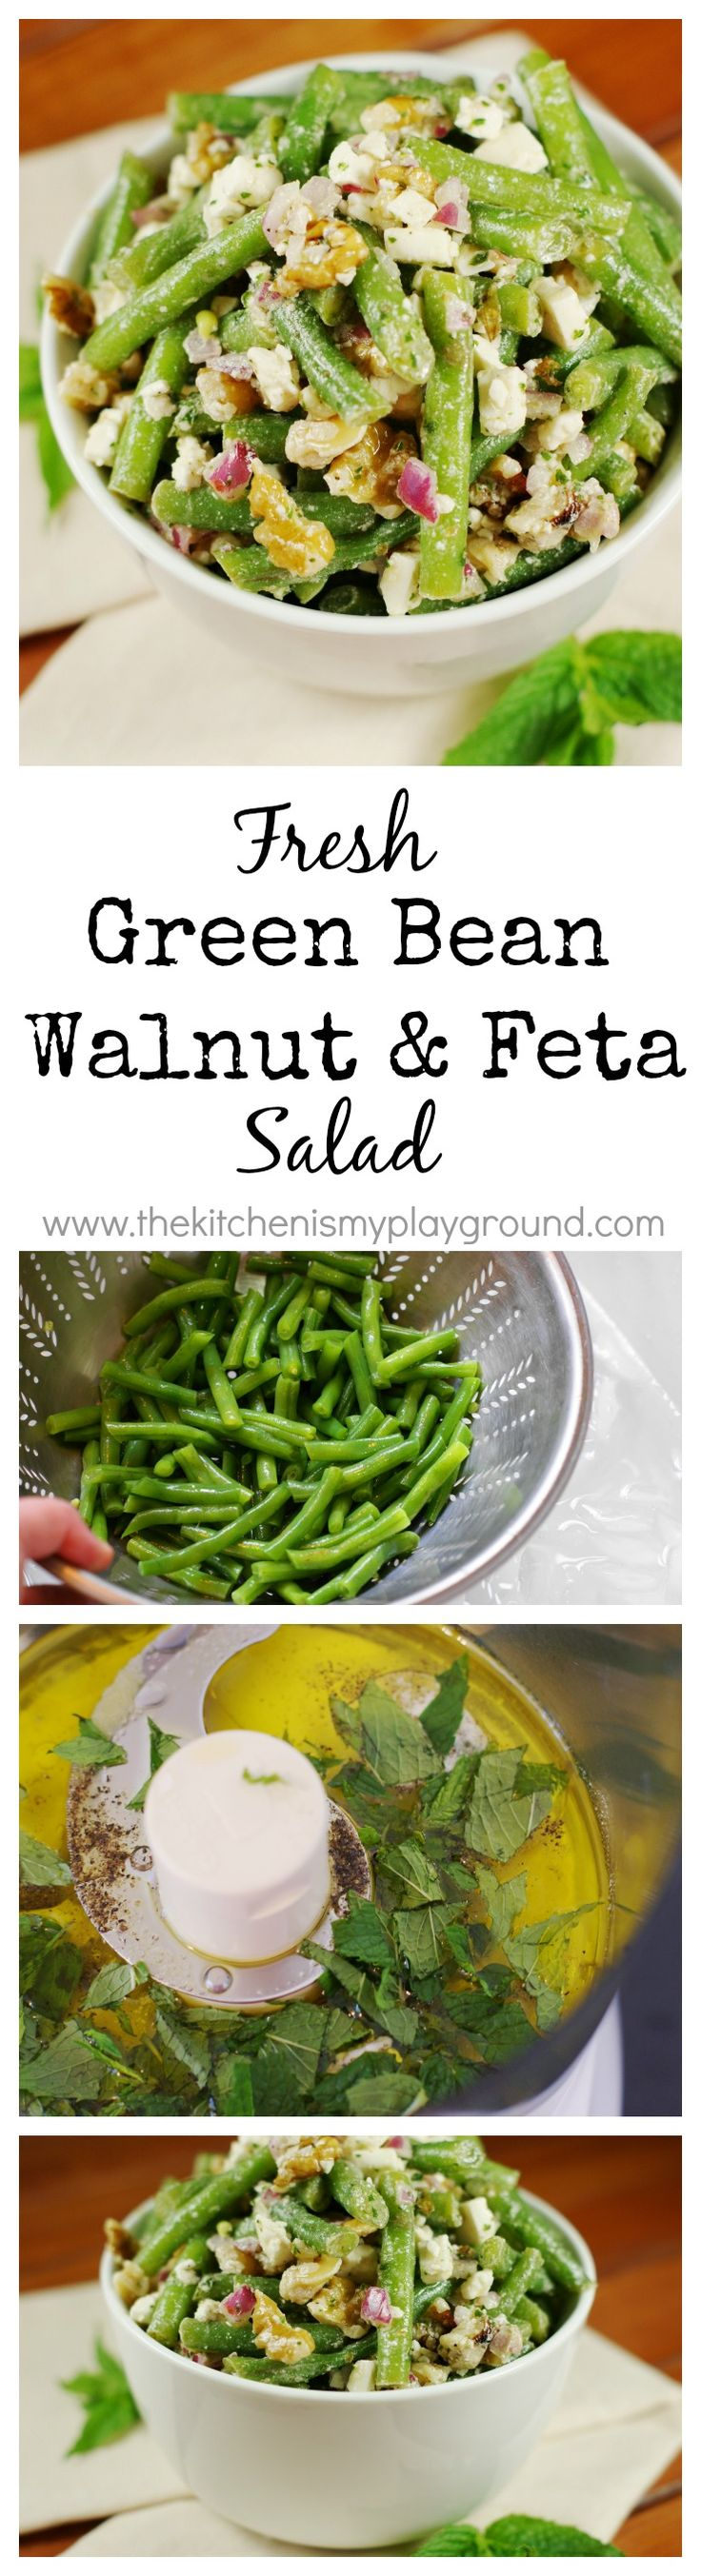 Fresh Green Bean, Walnut, and Feta Cheese Salad dressed with fresh mint vinaigrette ~ one amazingly delicious flavor combination.  www.thekitchenismyplayground.com: